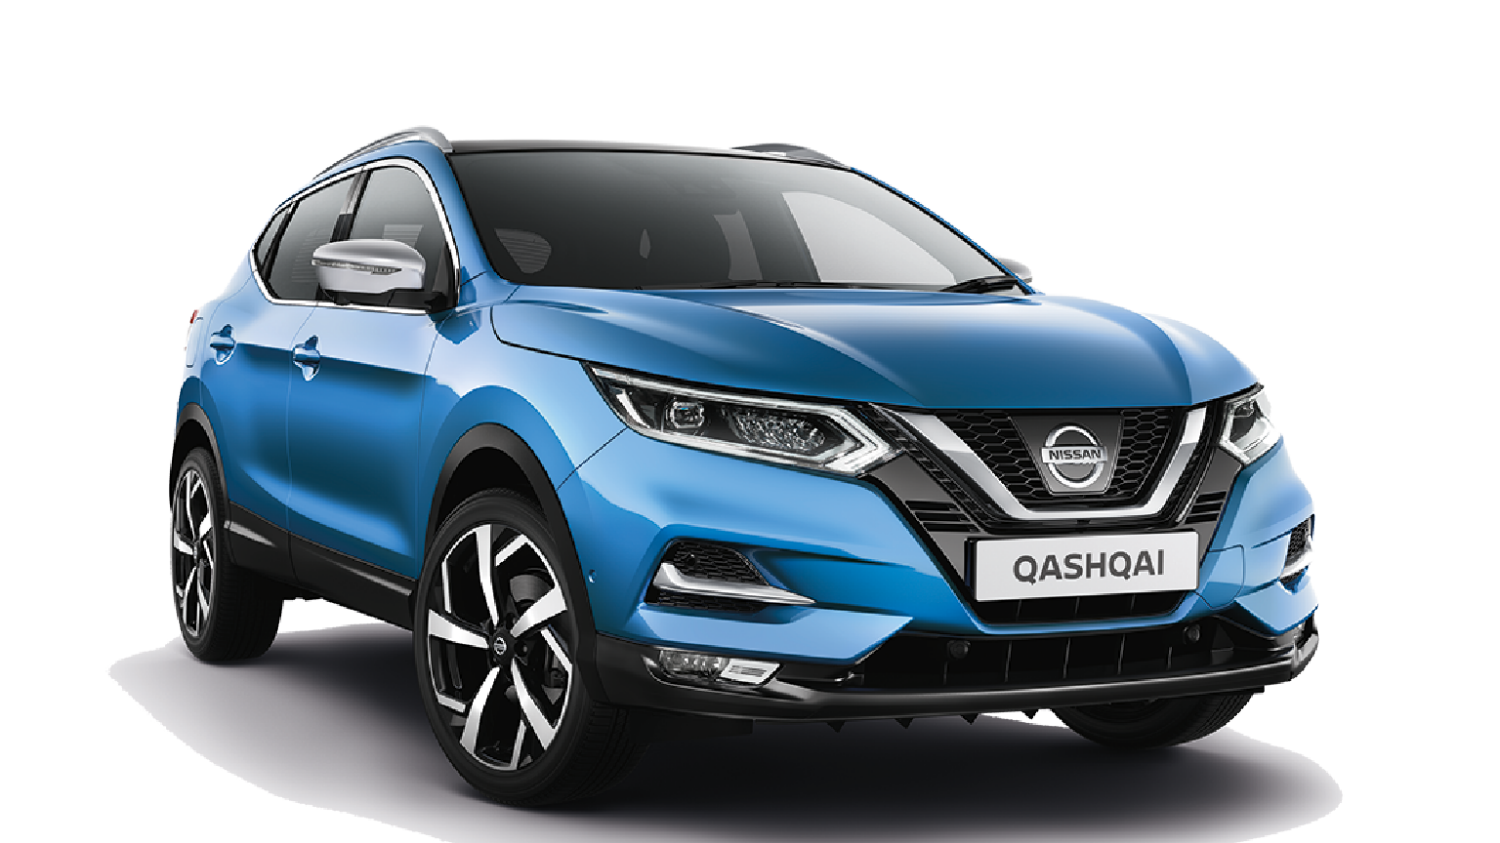 New Qashqai crossover 1.2L turbocharged